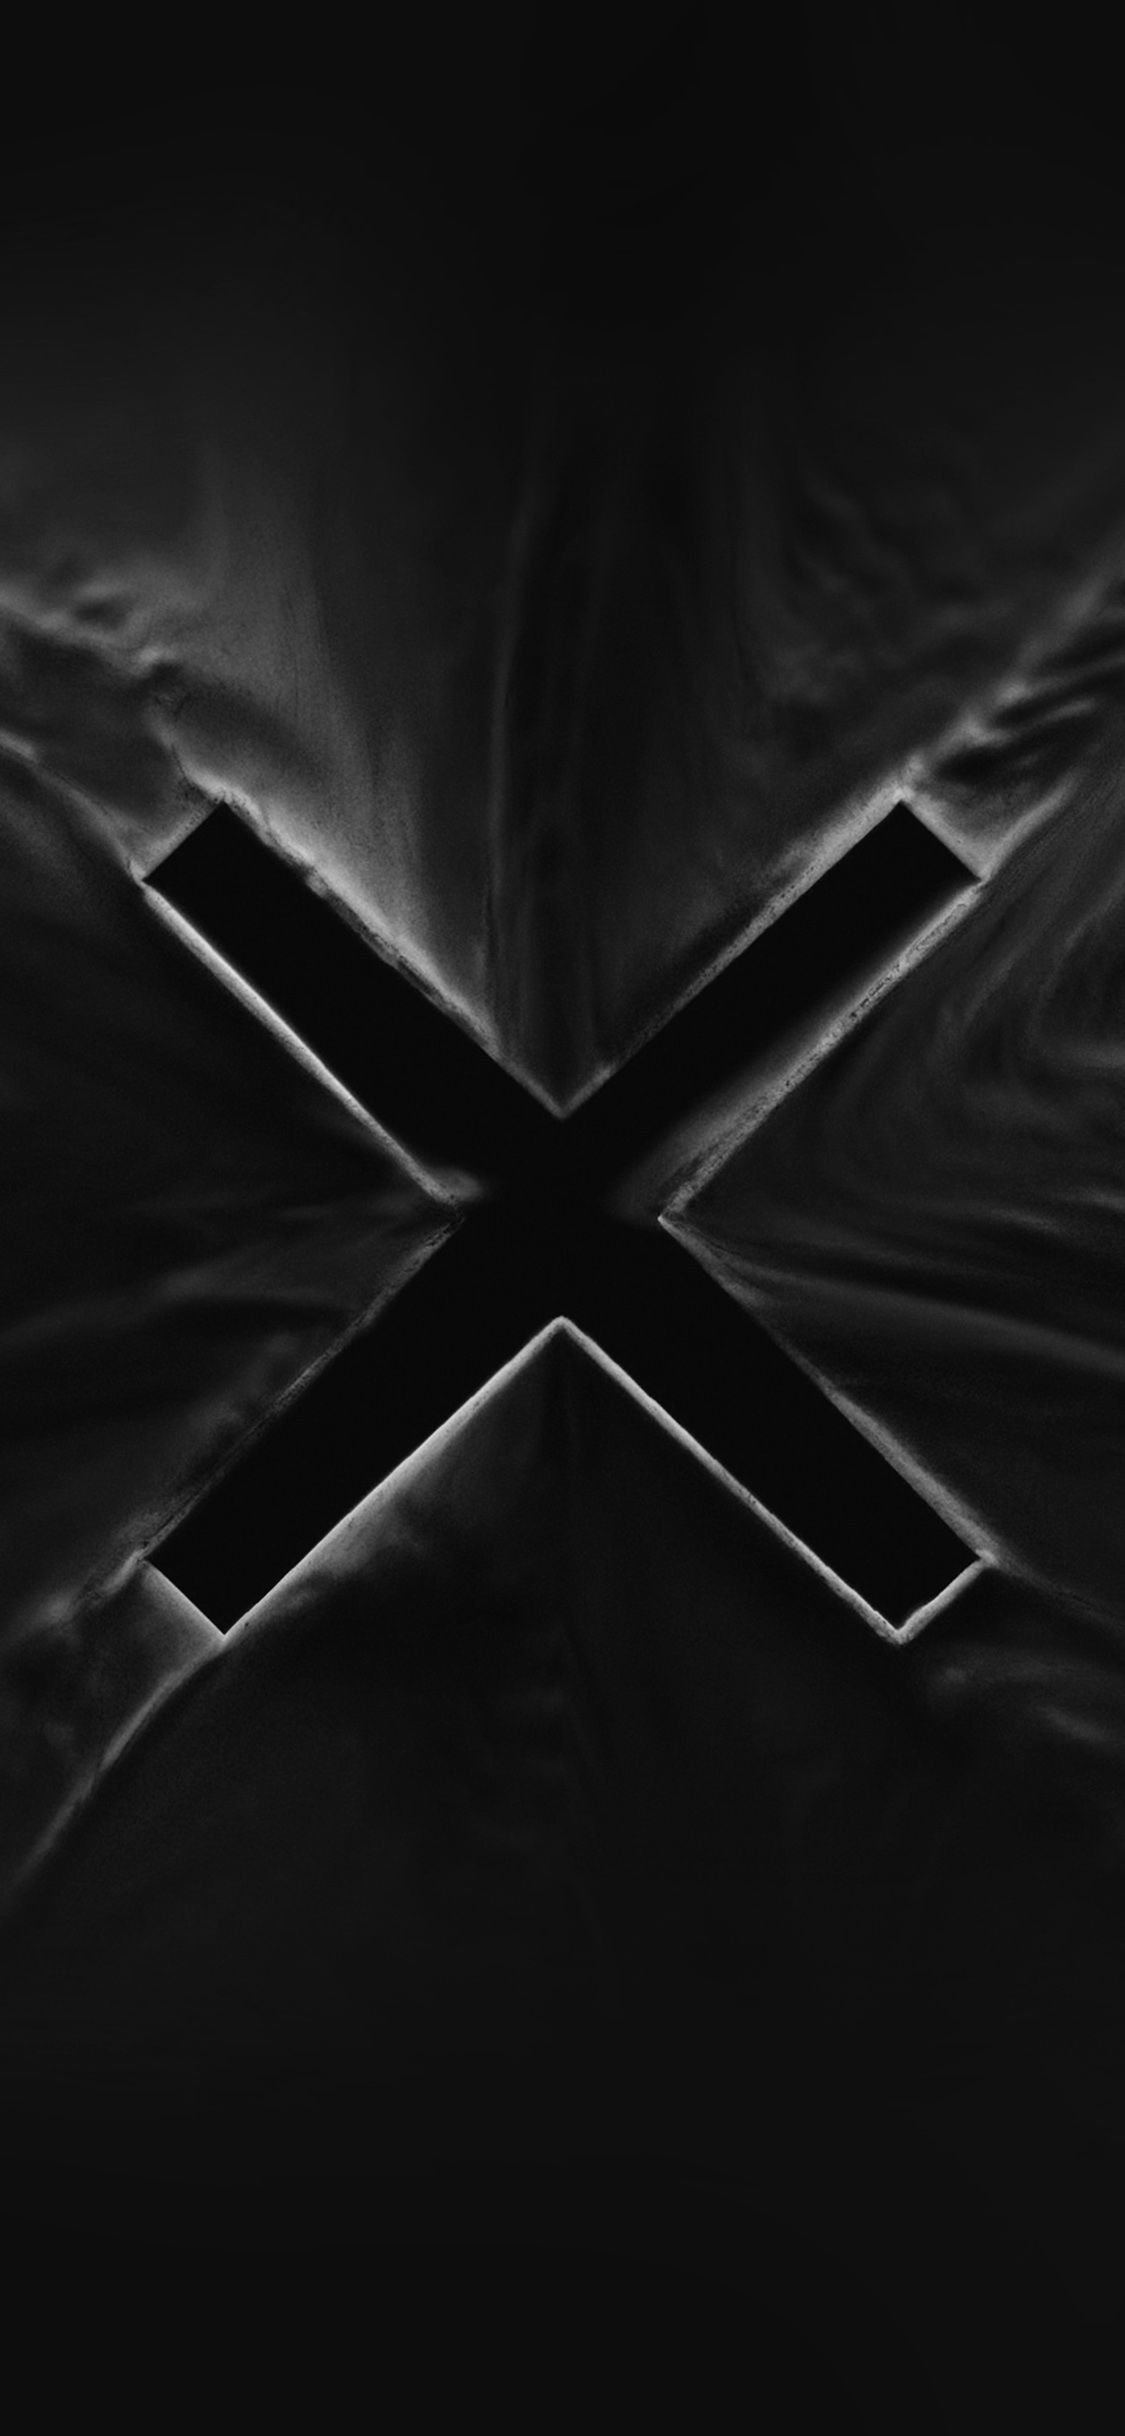 iPhonexpapers.com-Apple-iPhone-wallpaper-az99-x-abstract-alphabet-illustration-art-dark-black-bw